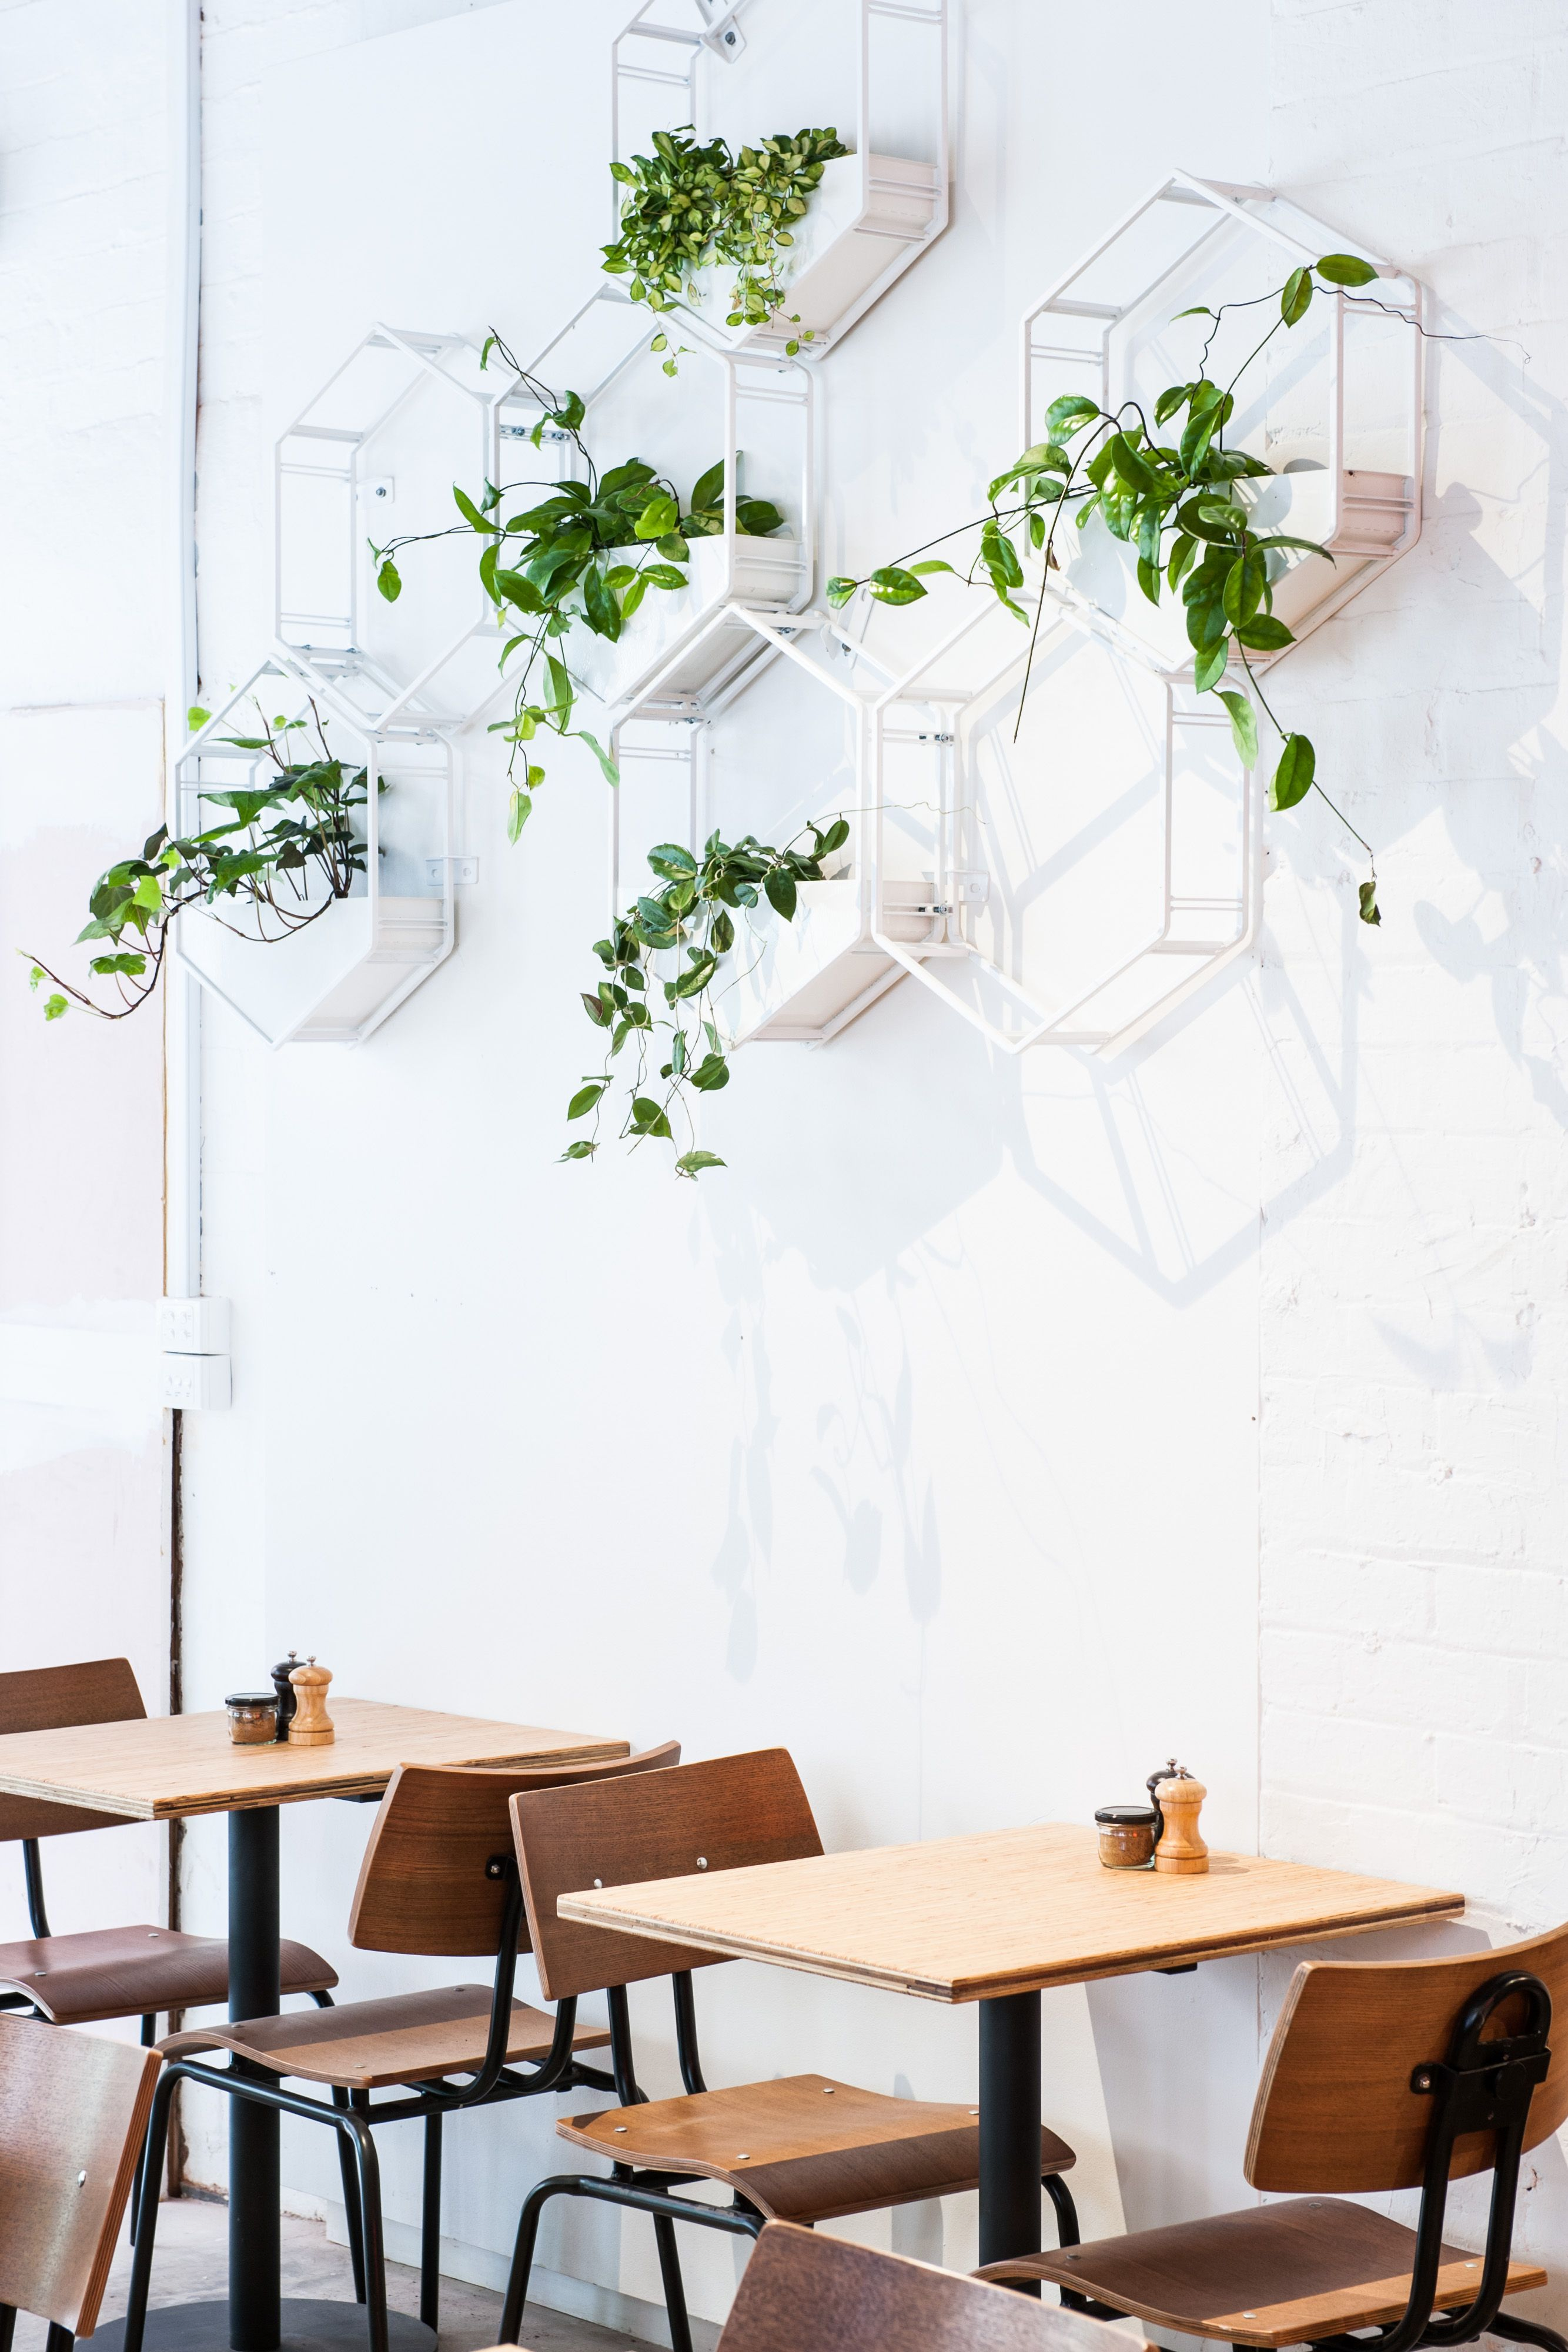 Wabe Modular Wall Planter By Oblica And Glasshaus Wall Planter Modular Walls Wall Design